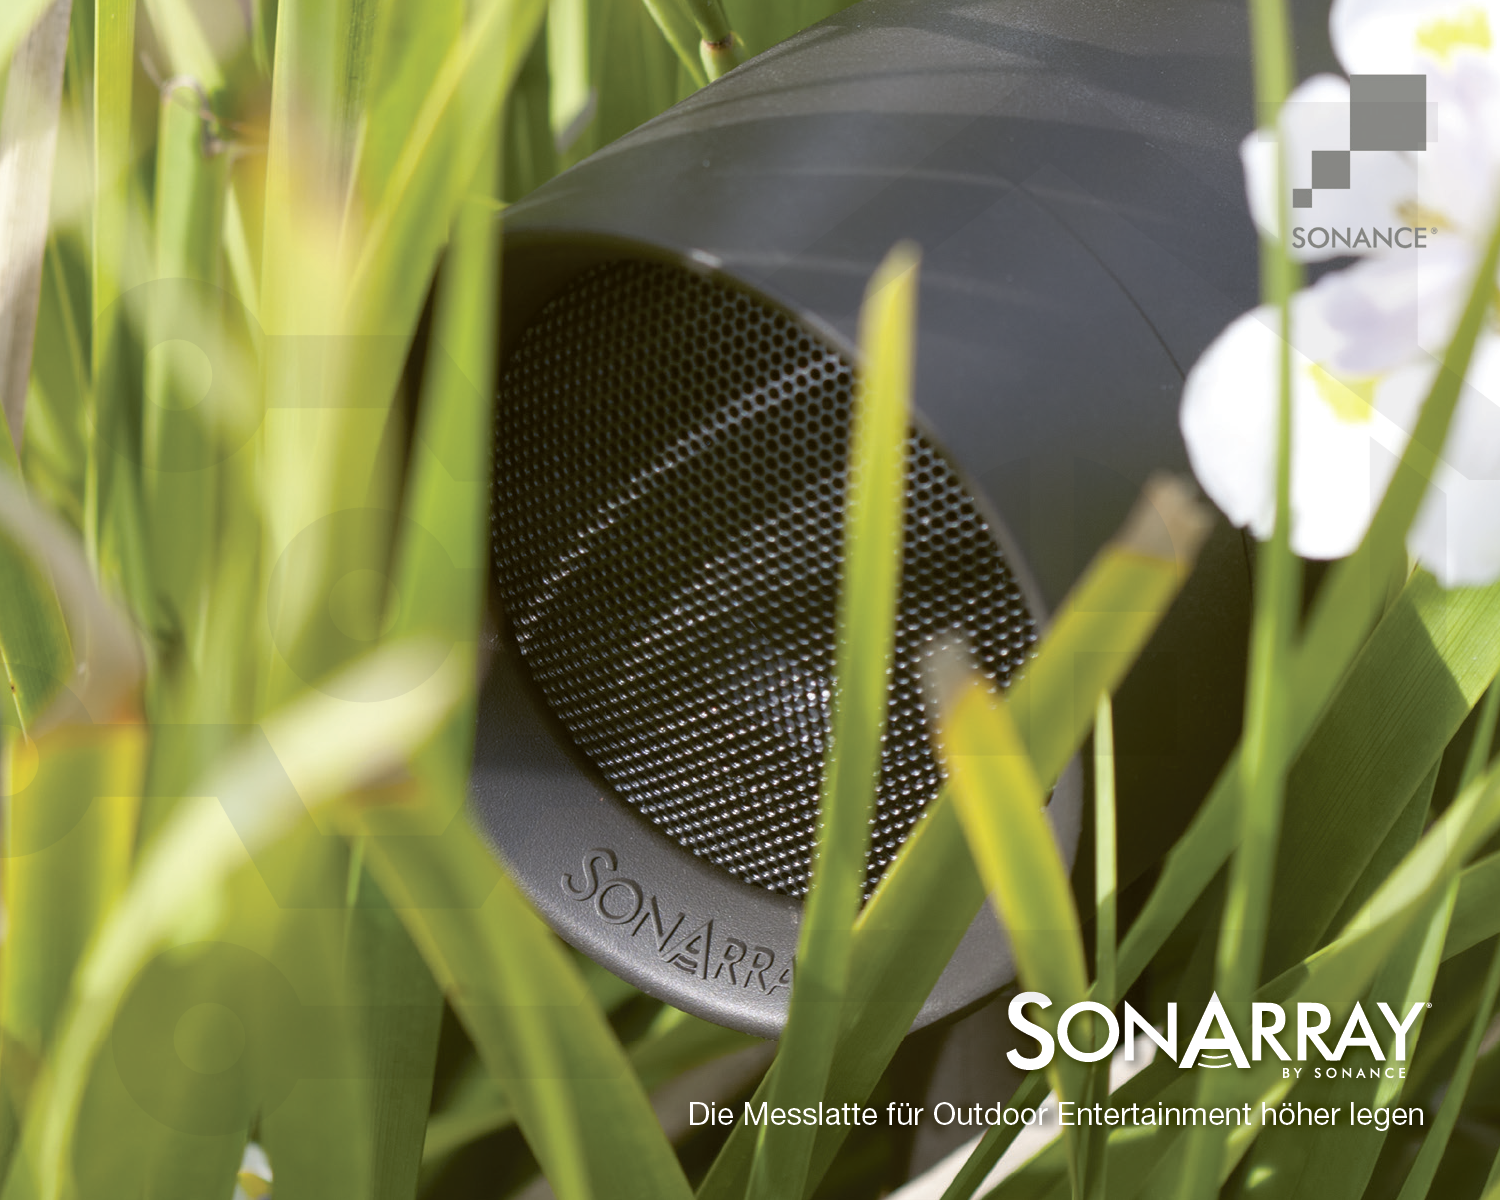 Sonarray_Brochure_2018_ottosystem-01